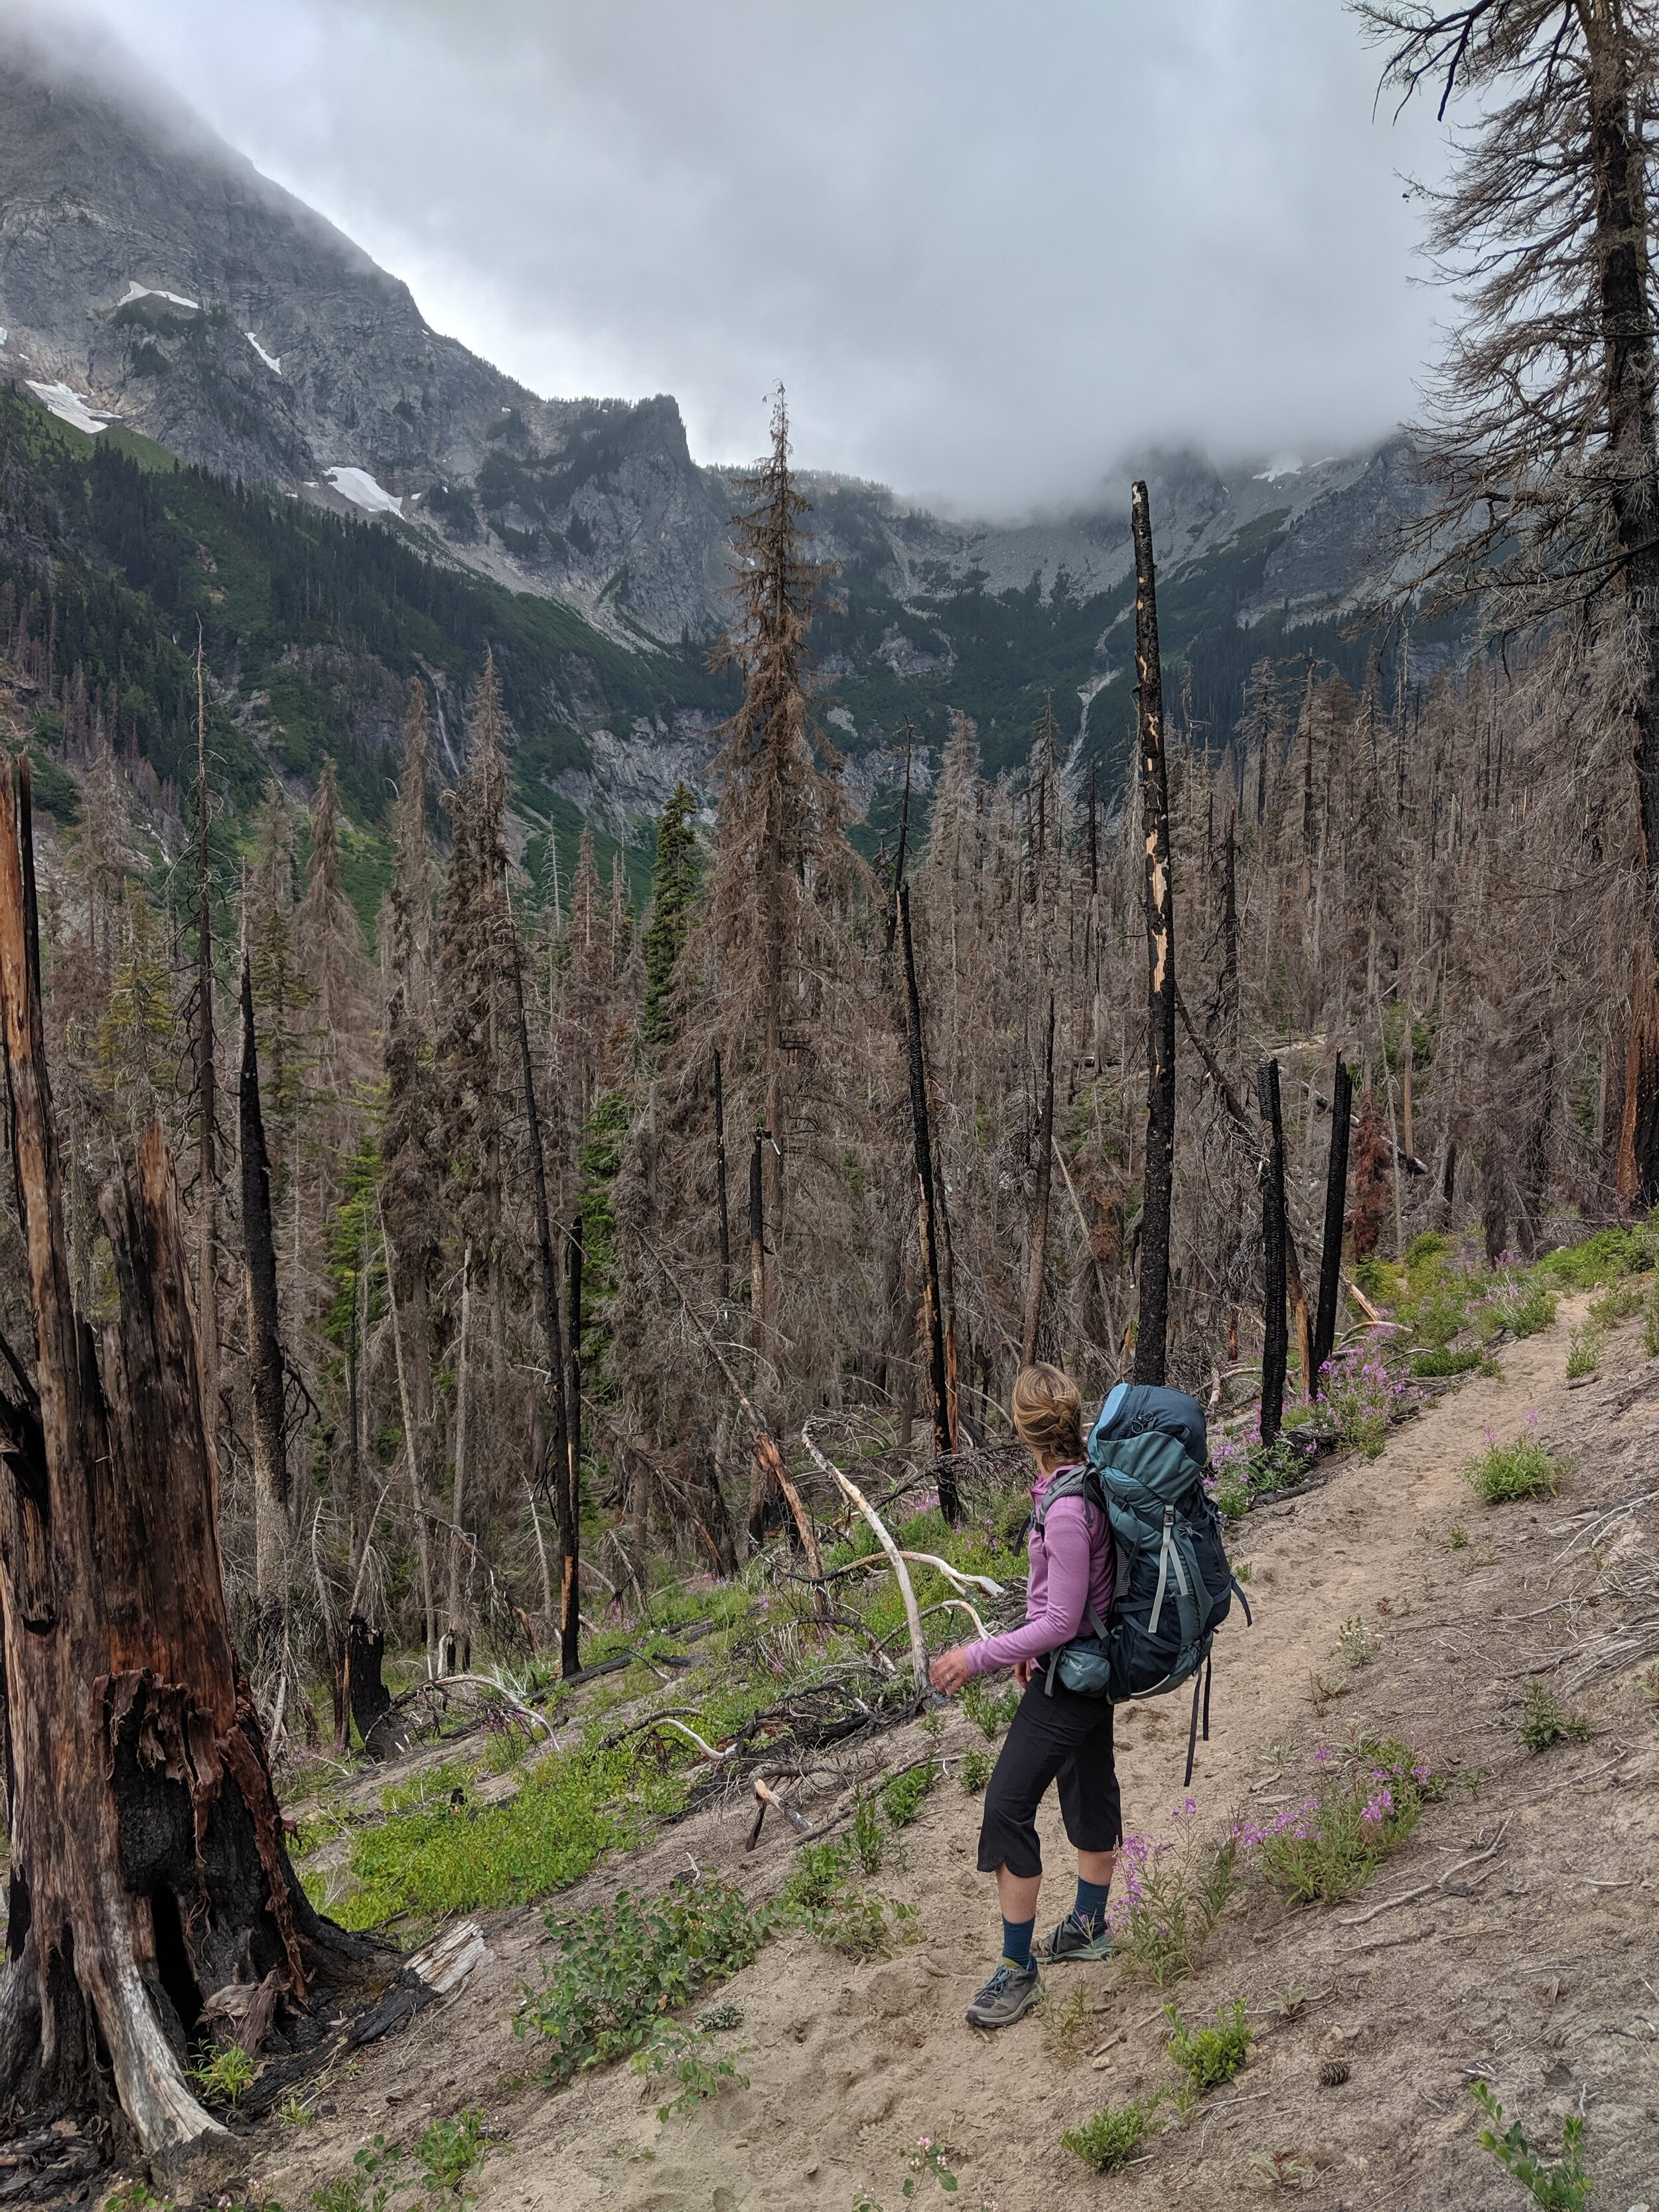 The first switchbacks were in a burnt-out portion of the forest. We were fortunate to have a cool, overcast day to tackle them.